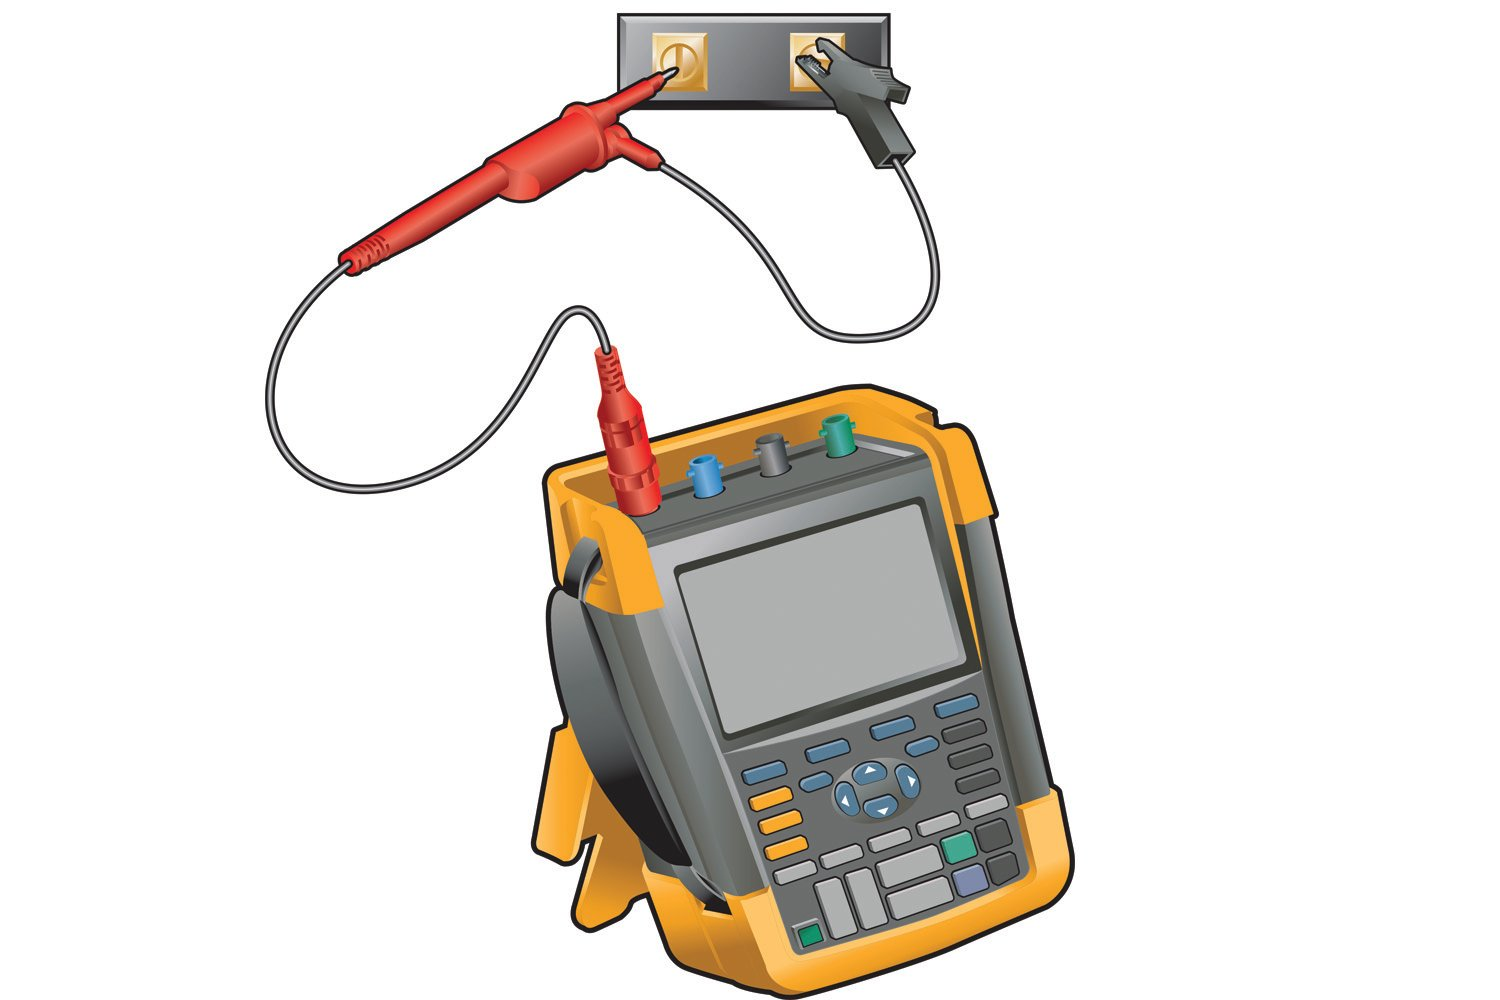 Measure the dc bus voltage across the plus and minus terminals